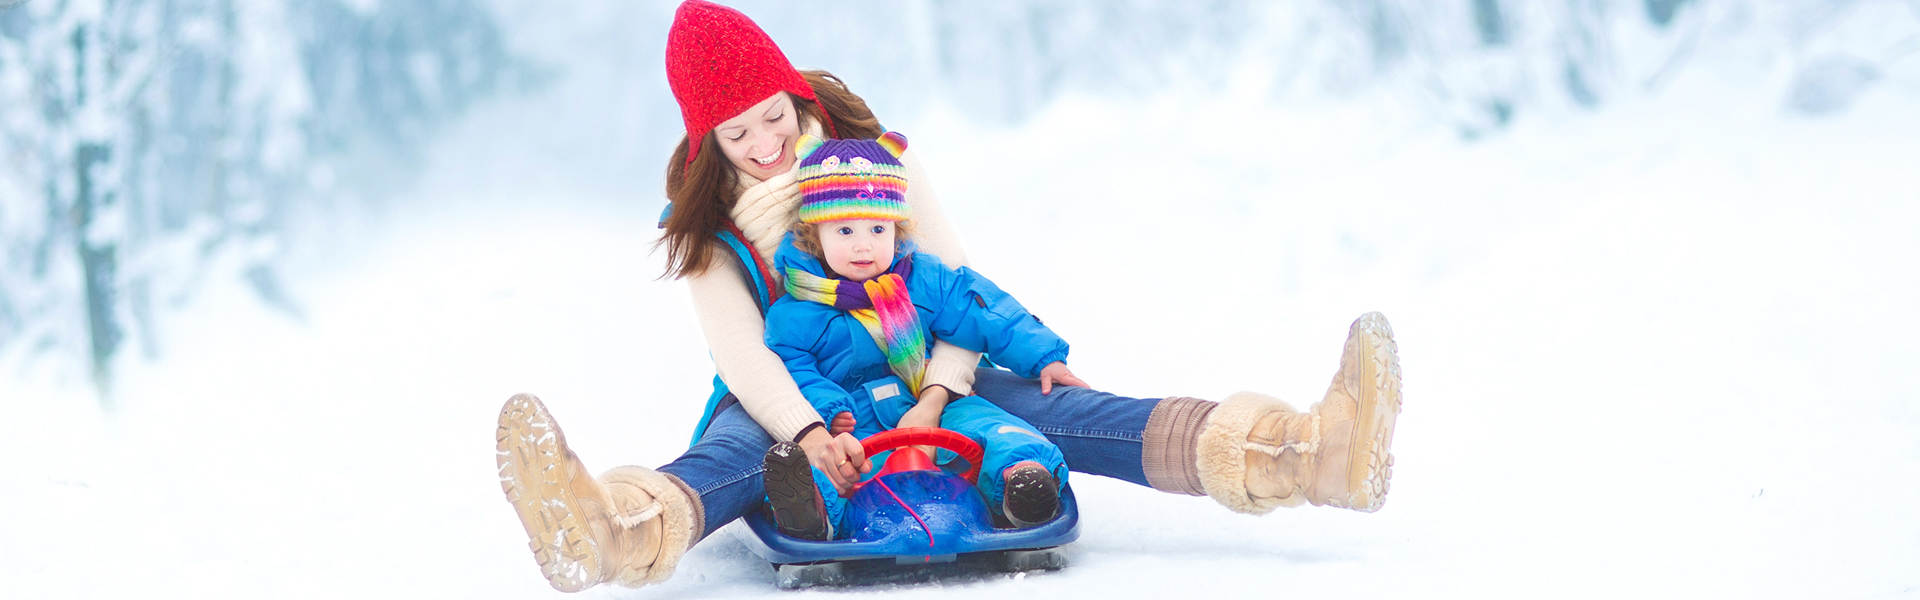 Fun Winter Activities for Children